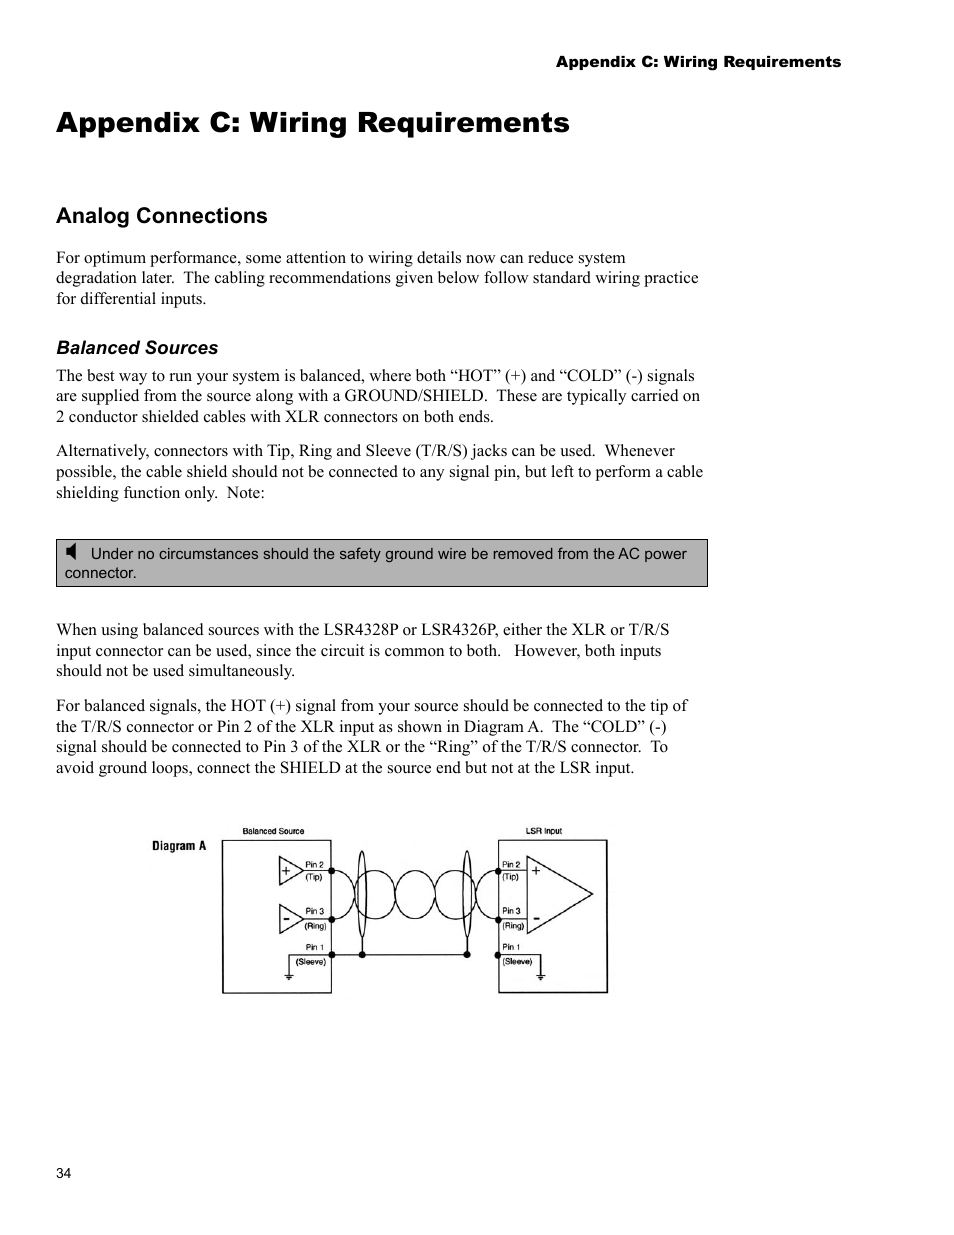 medium resolution of appendix c wiring requirements jbl lsr4326p user manual page 38 51